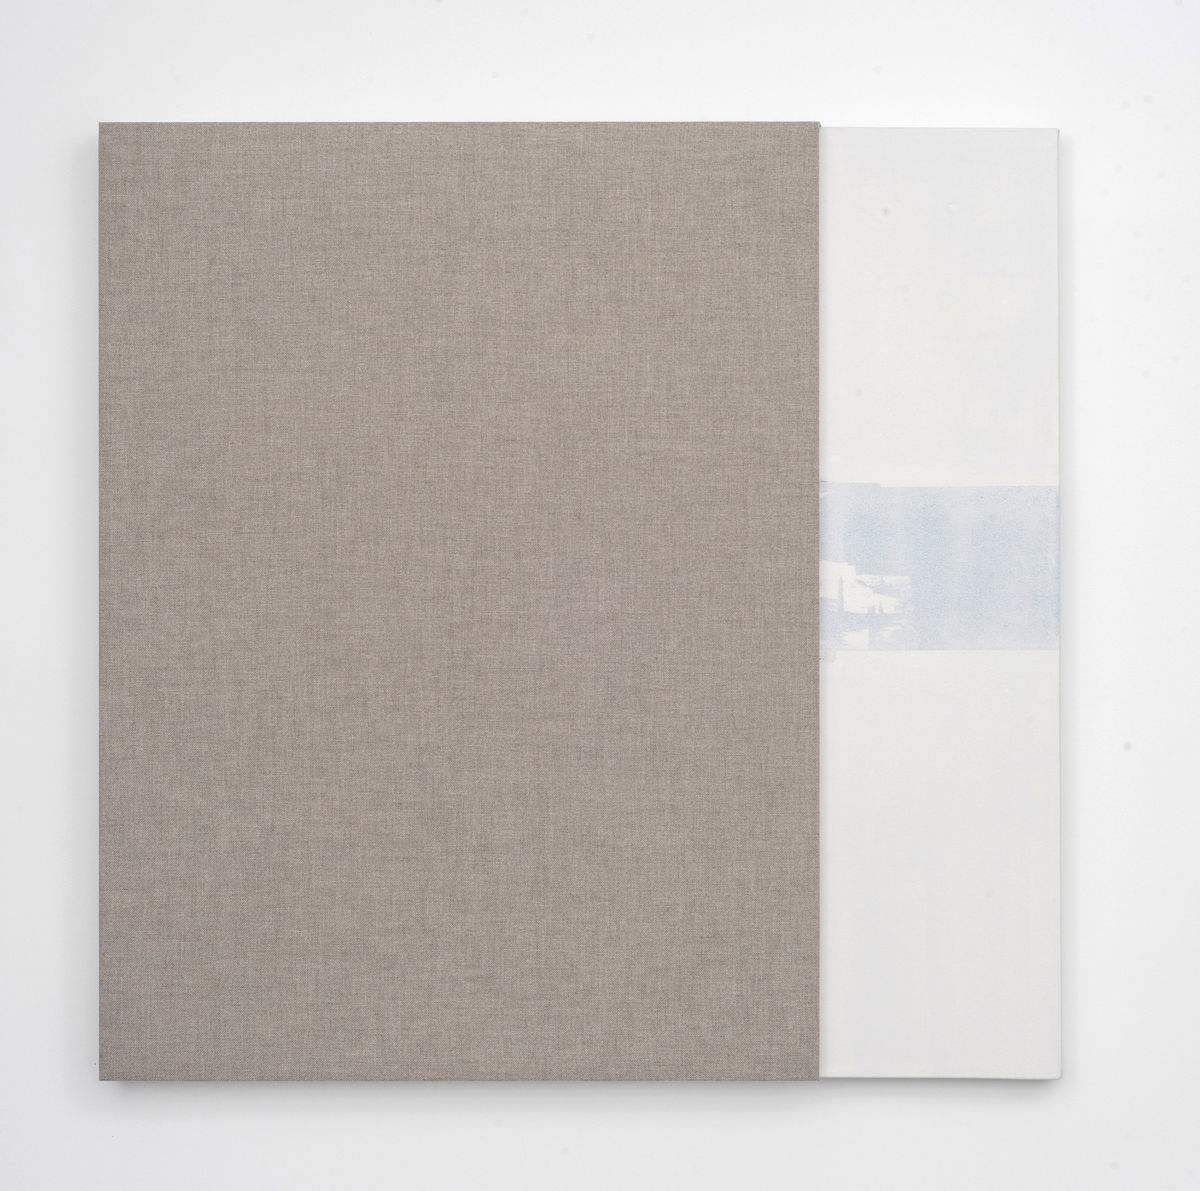 Untitled (Gray Note)